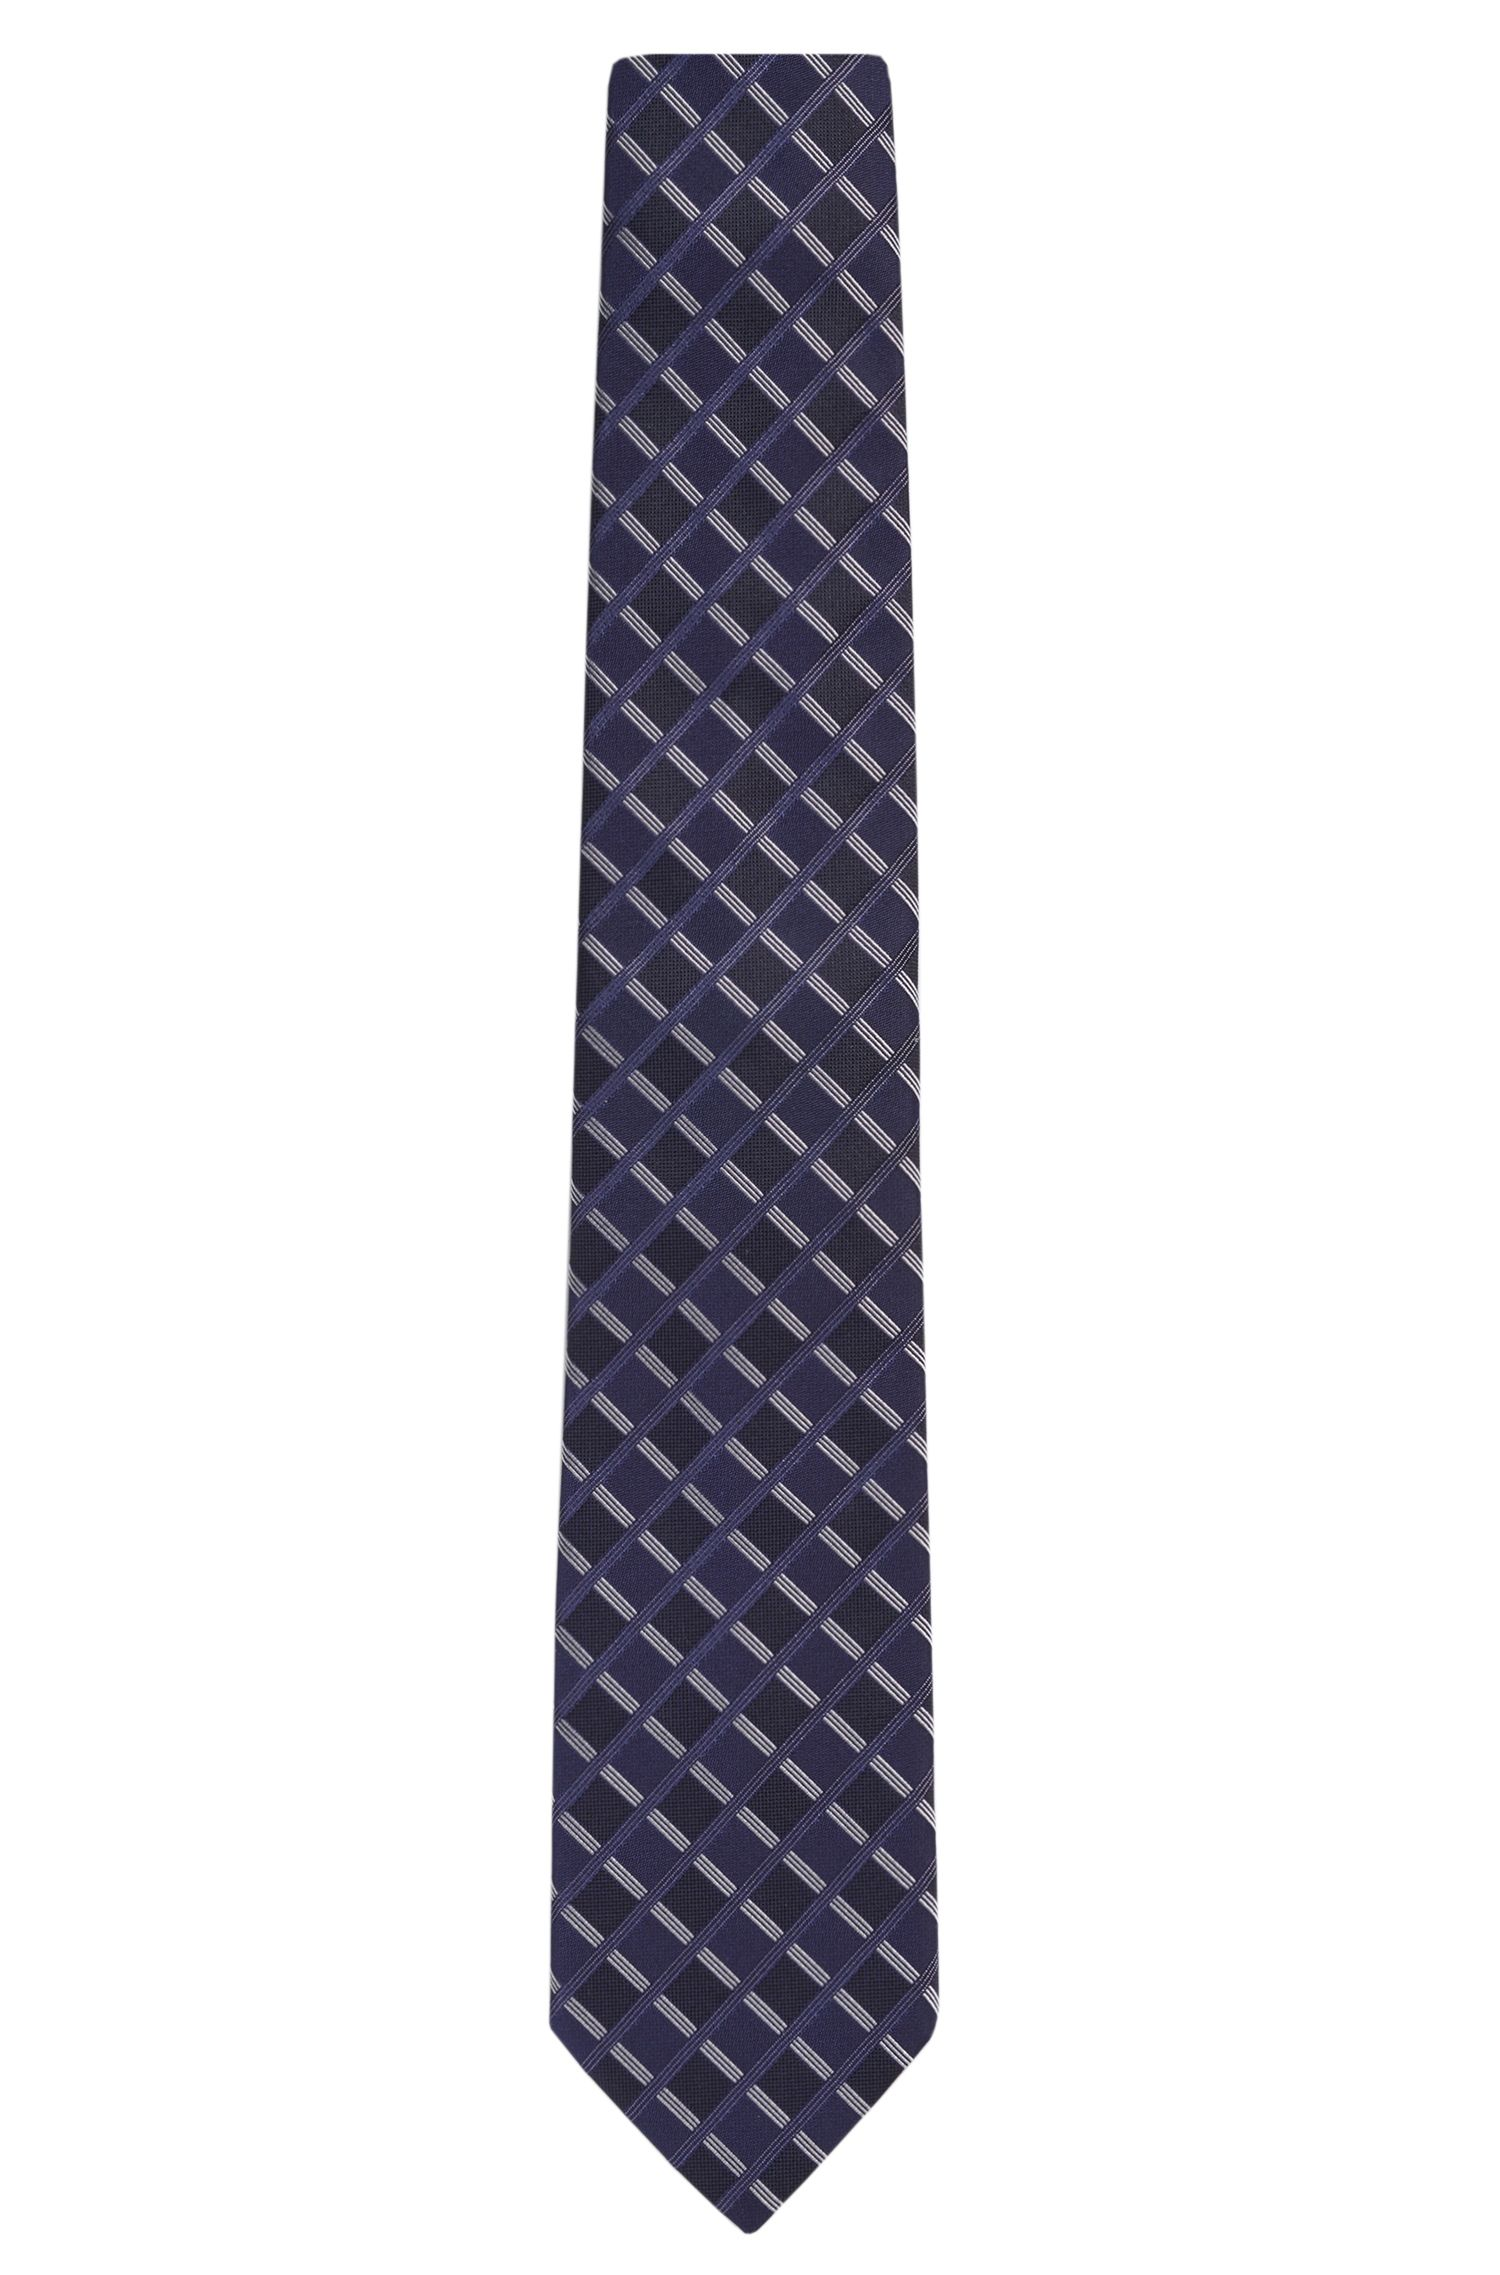 'Tie 7.5 cm' | Regular, Italian Silk Patterned Tie